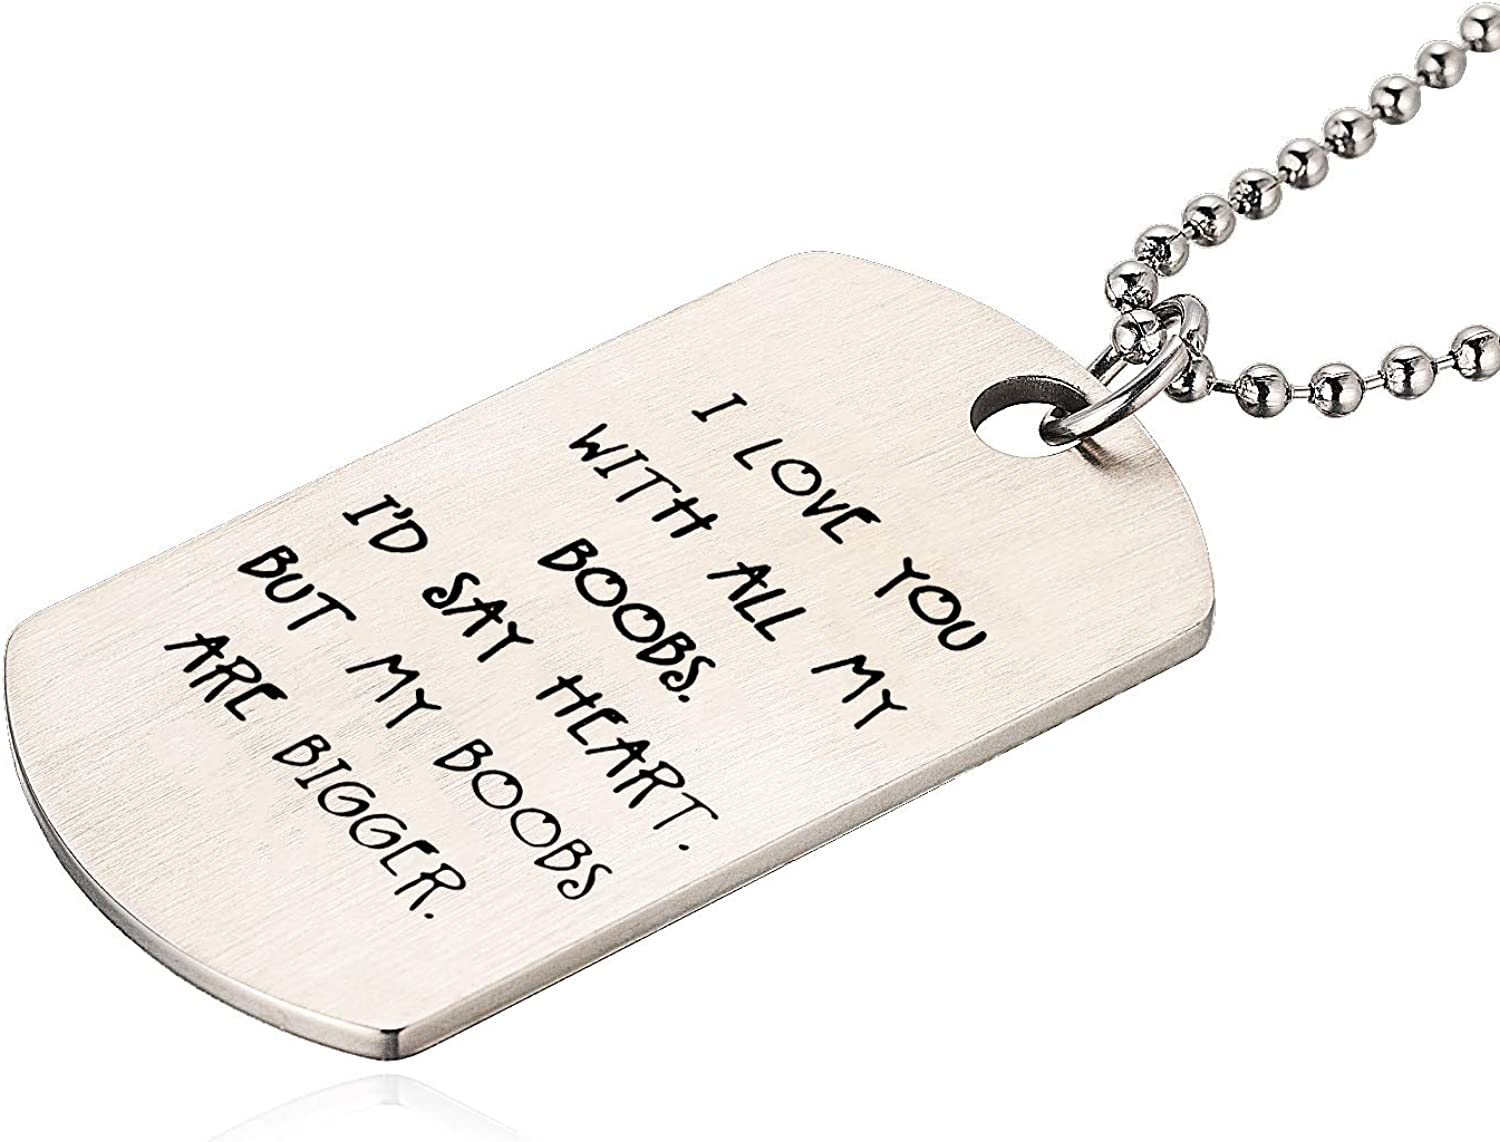 Memories Coding Boyfriend Gift Ideas Funny Keychain Gift for Husband Customized Necklace Keychain